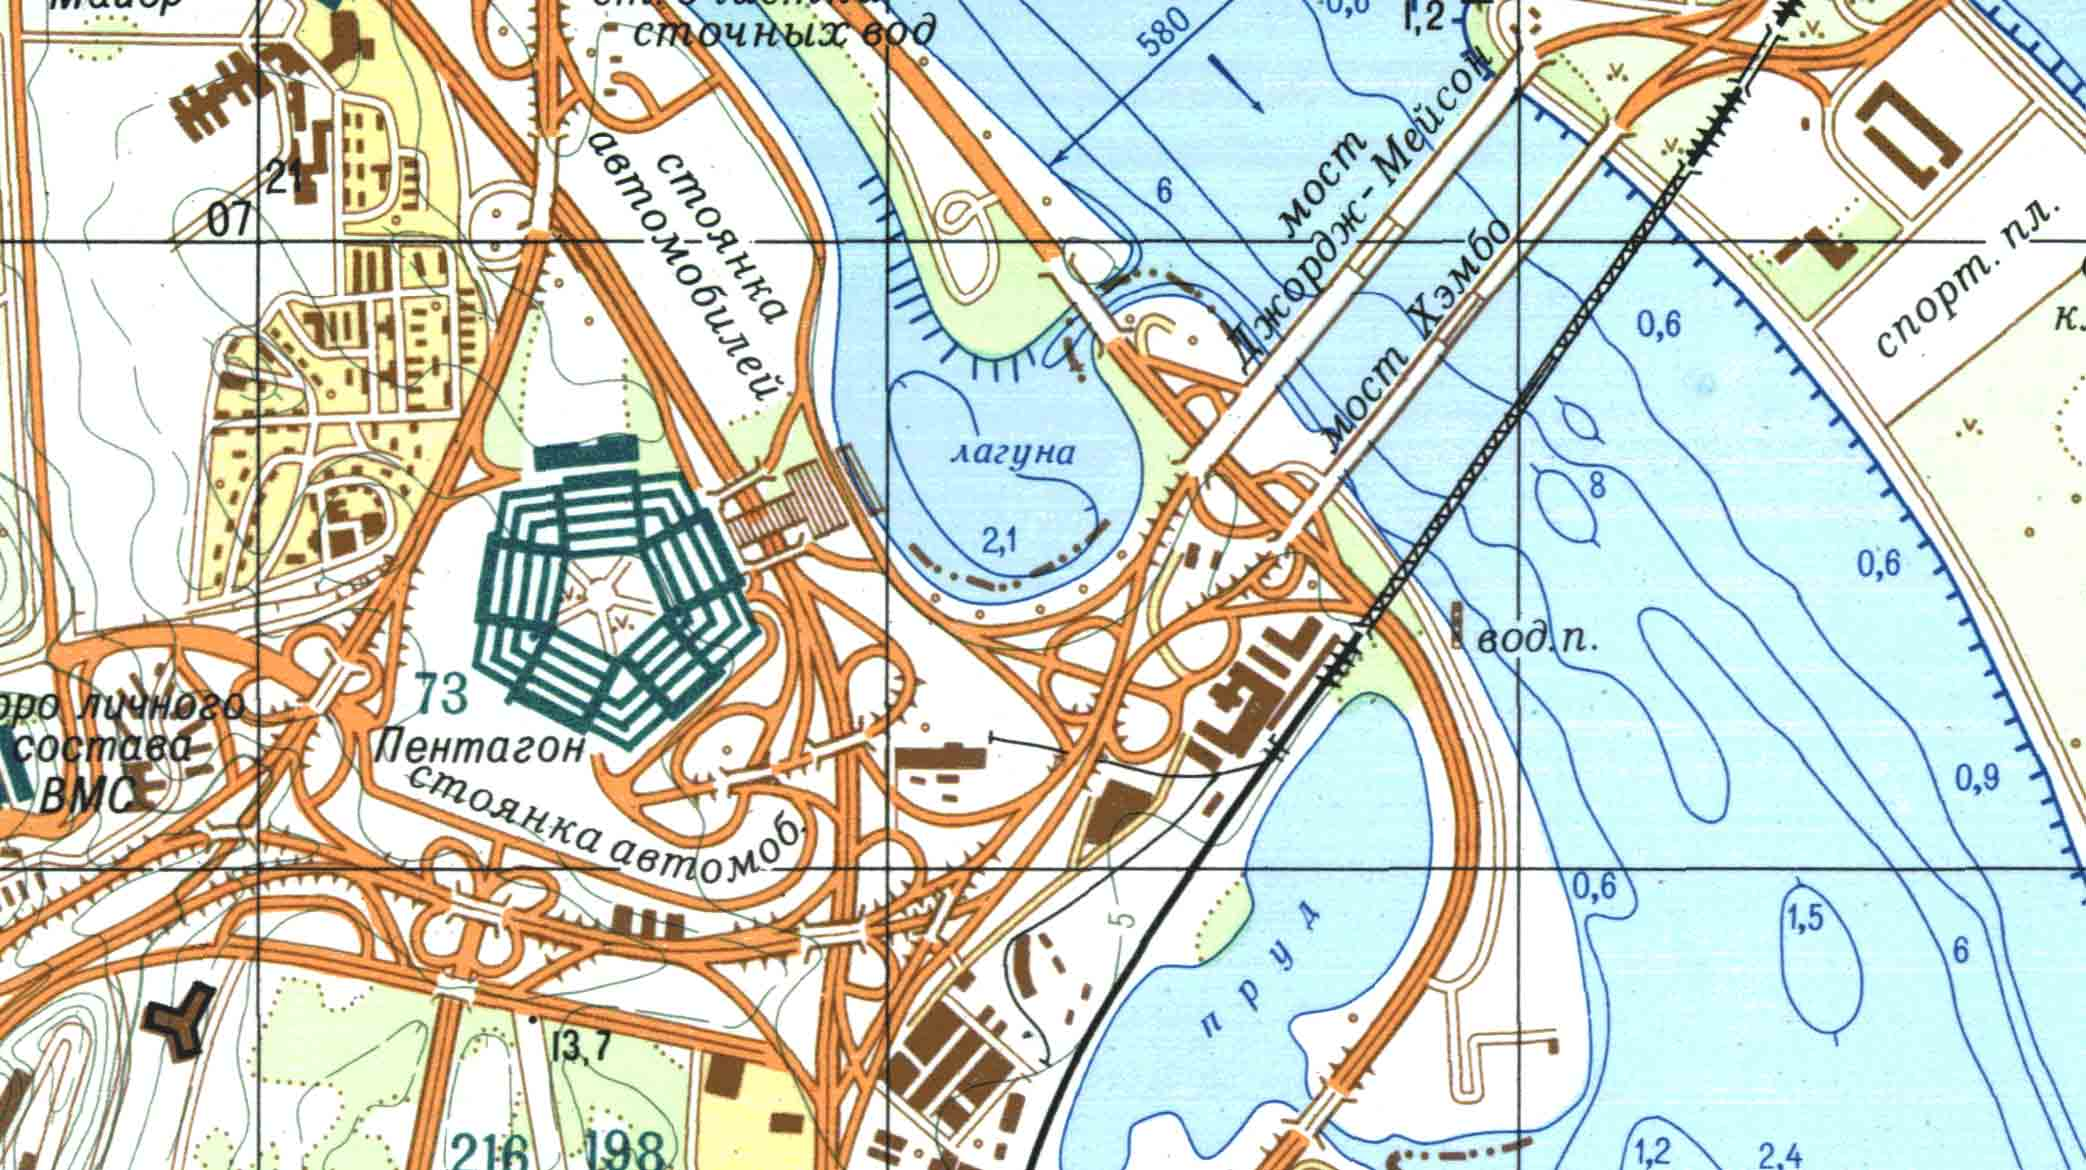 Soviet Topographical Map Of The Area Around The Pentagon